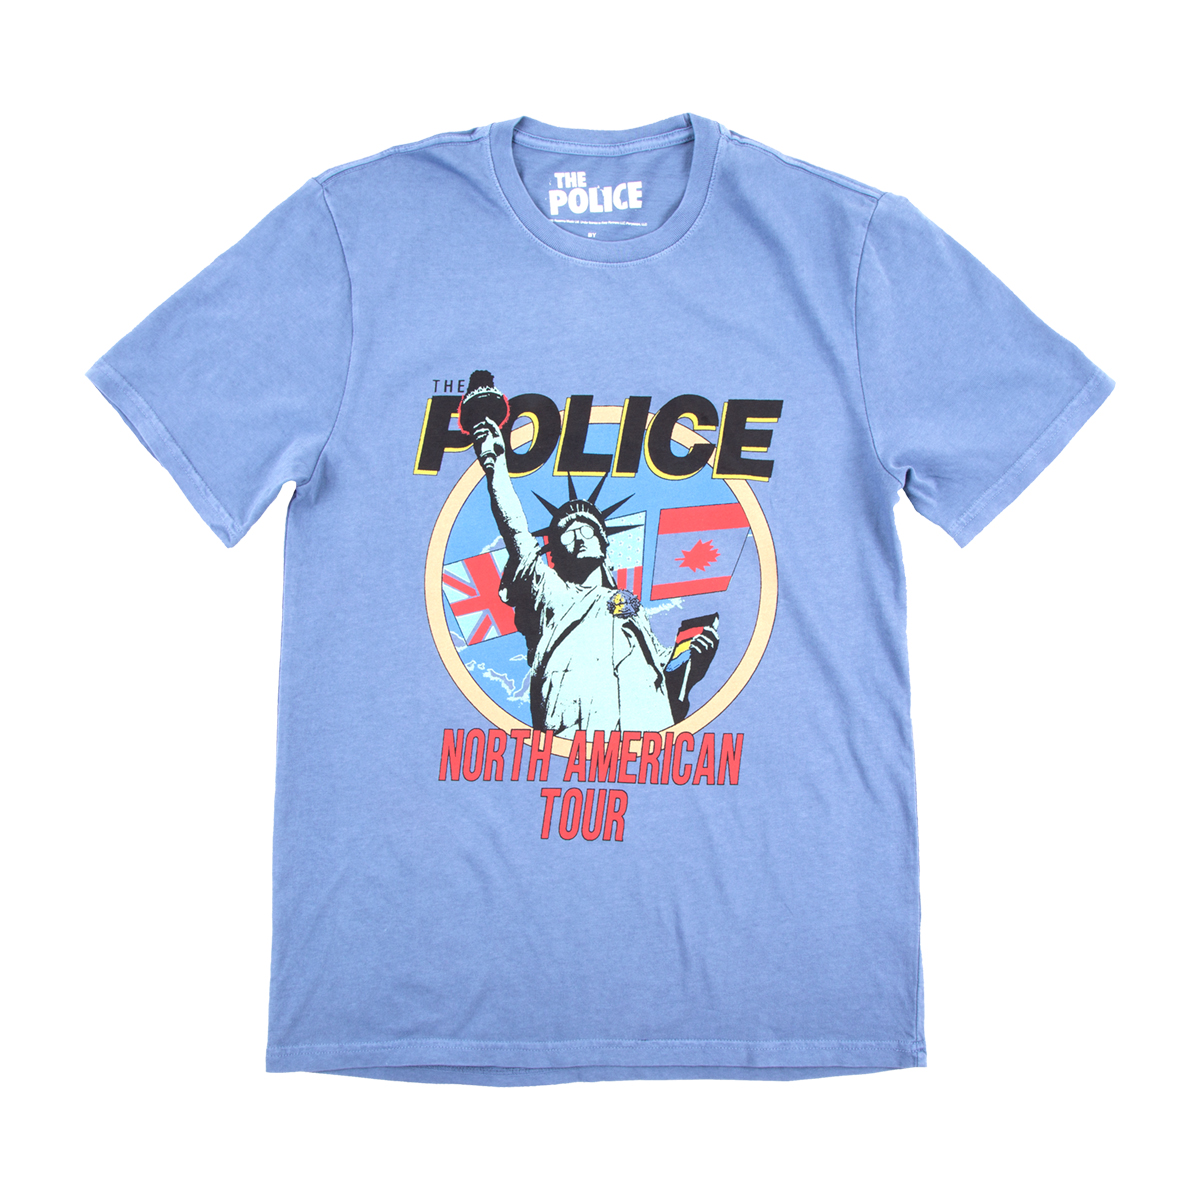 The Police 1983 North American Tour T-shirt